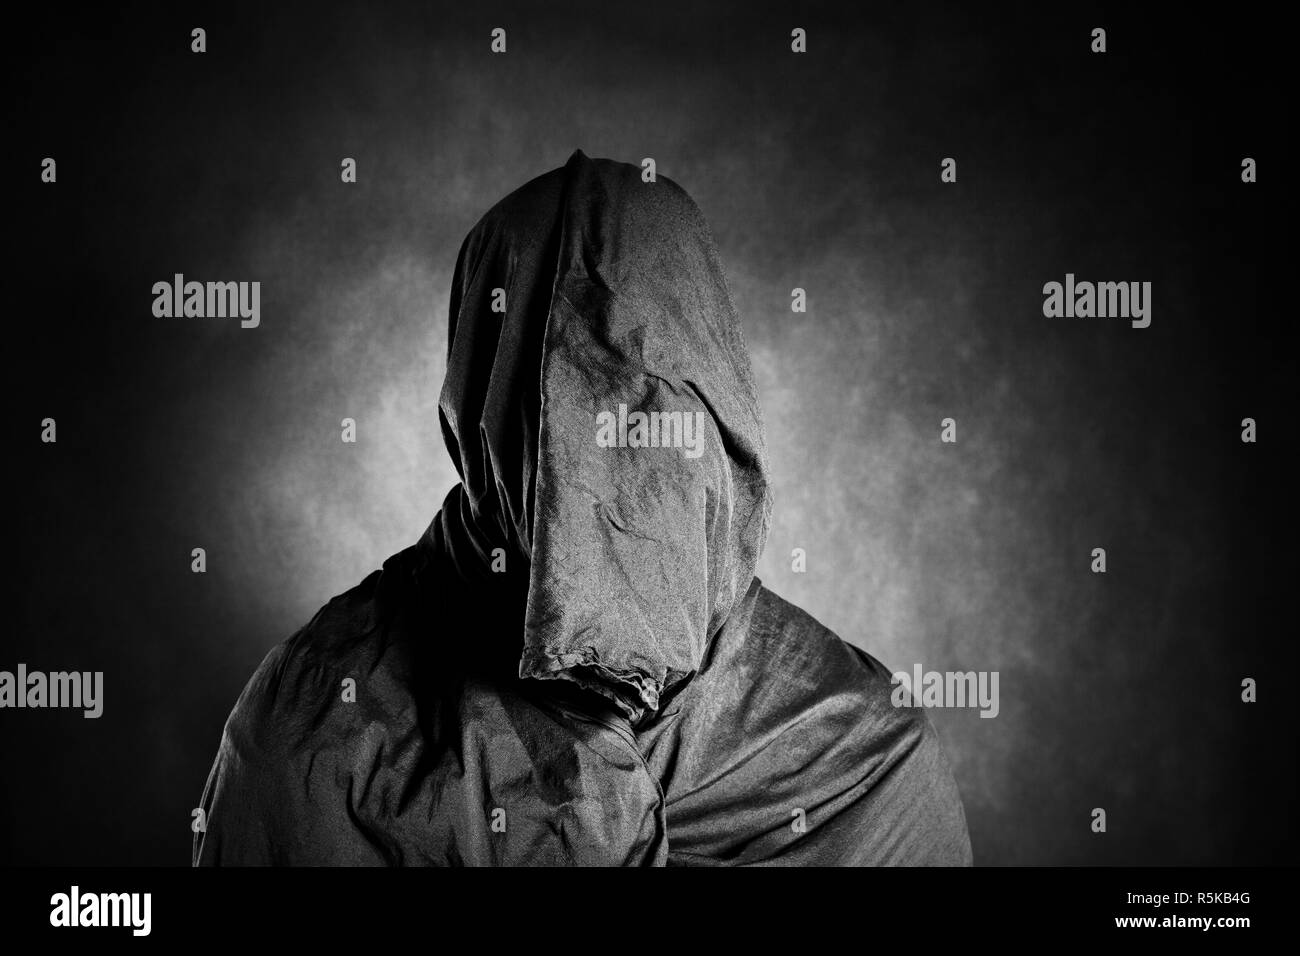 Ghostly figure in the dark - Stock Image